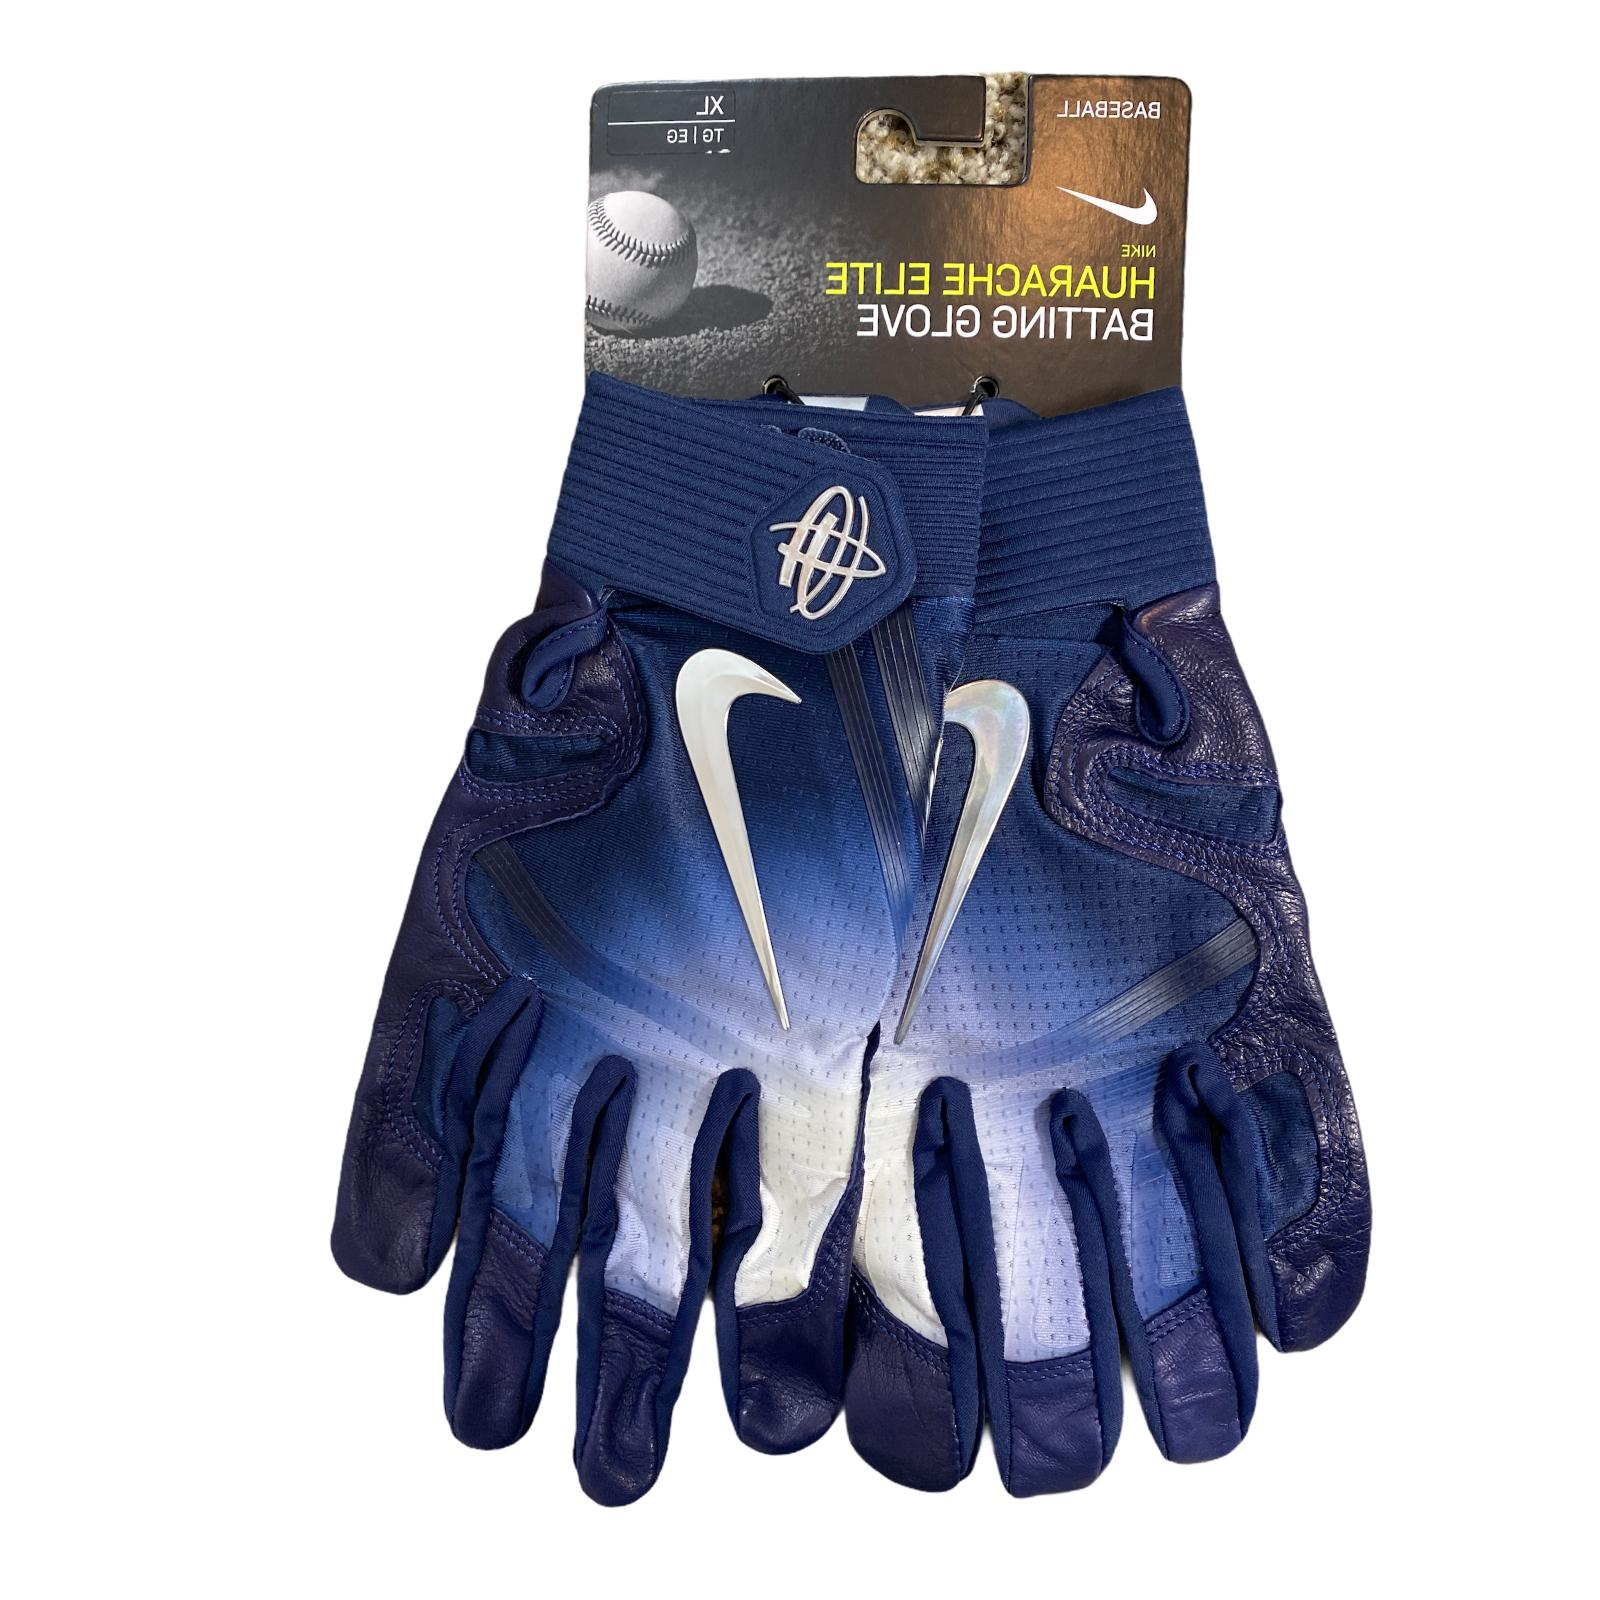 Nike Gloves Leather Palm Navy Blue XL